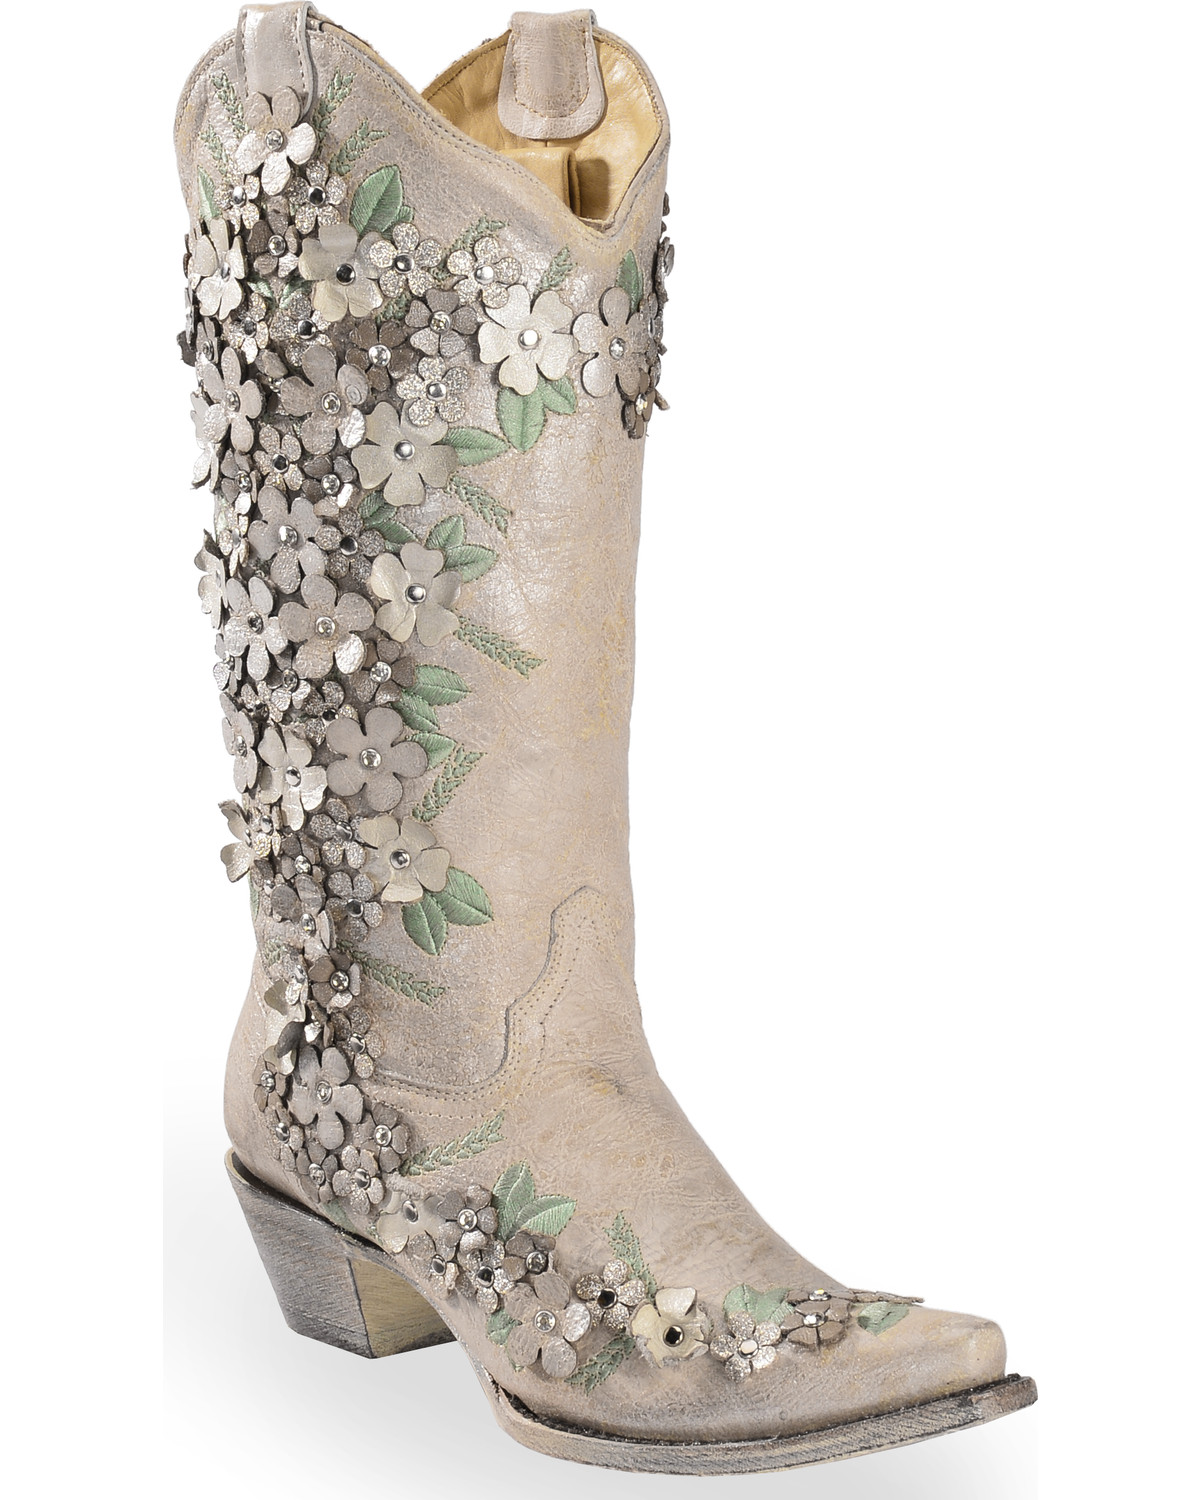 5d7ab709aae Corral Women s White Floral Overlay Embroidered Stud and Crystals Cowgirl  Boots - Snip Toe